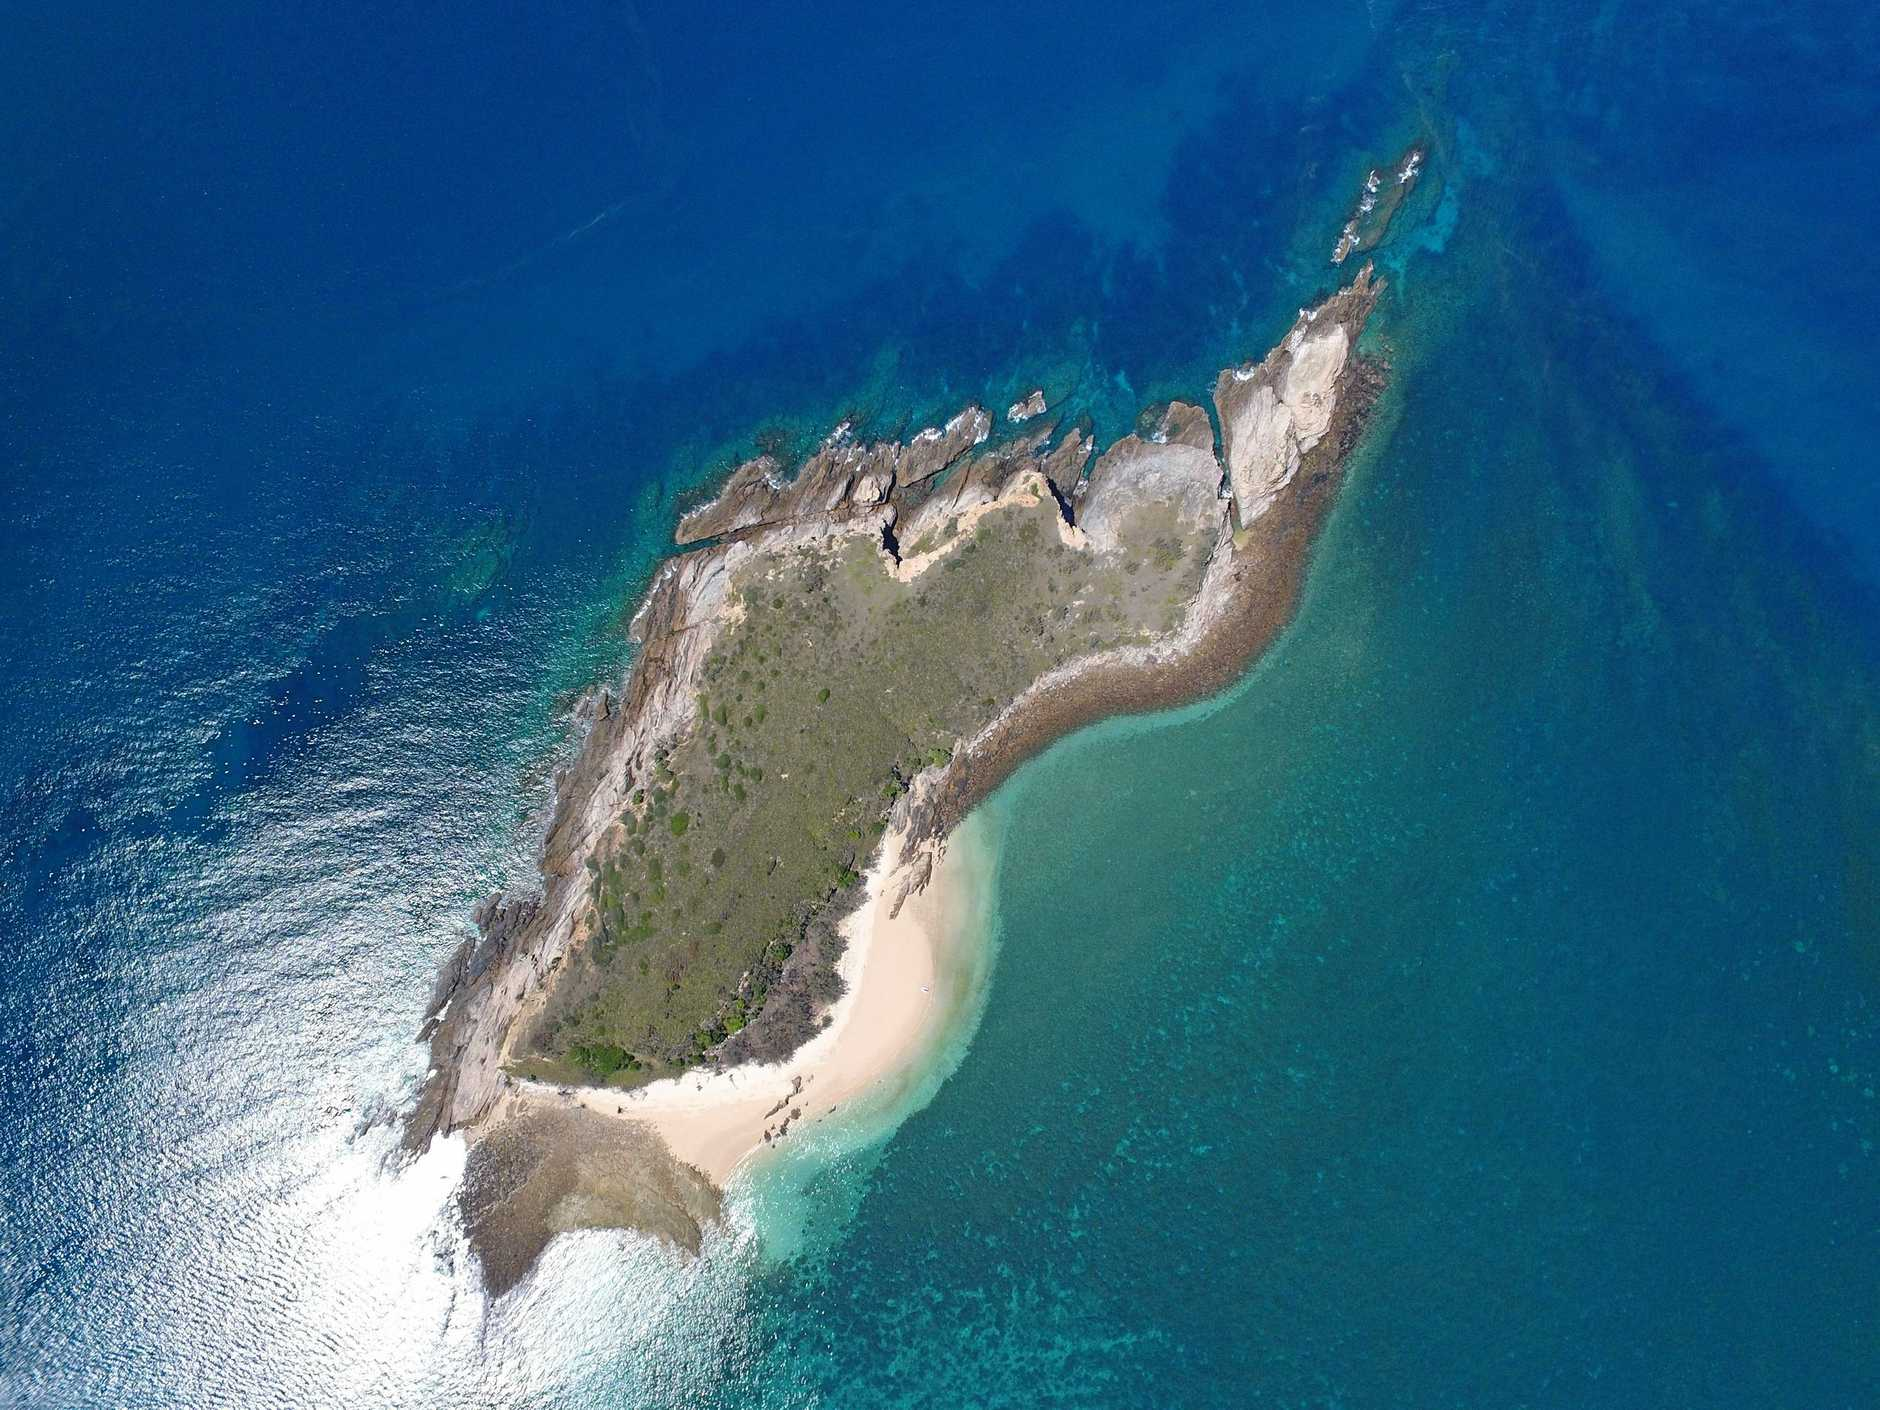 Drone footage of the Keppel Islands used in the book.